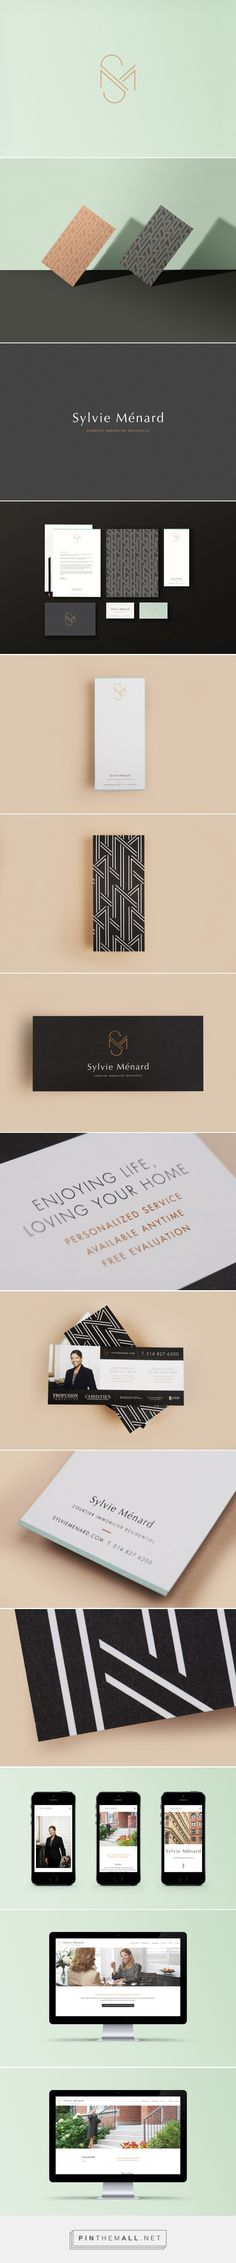 Sylvie Menard Premium Real Estate Broker by ByeBye Bambi | Fivestar Branding Agency – Design and Branding Agency & Curated Inspiration Gallery